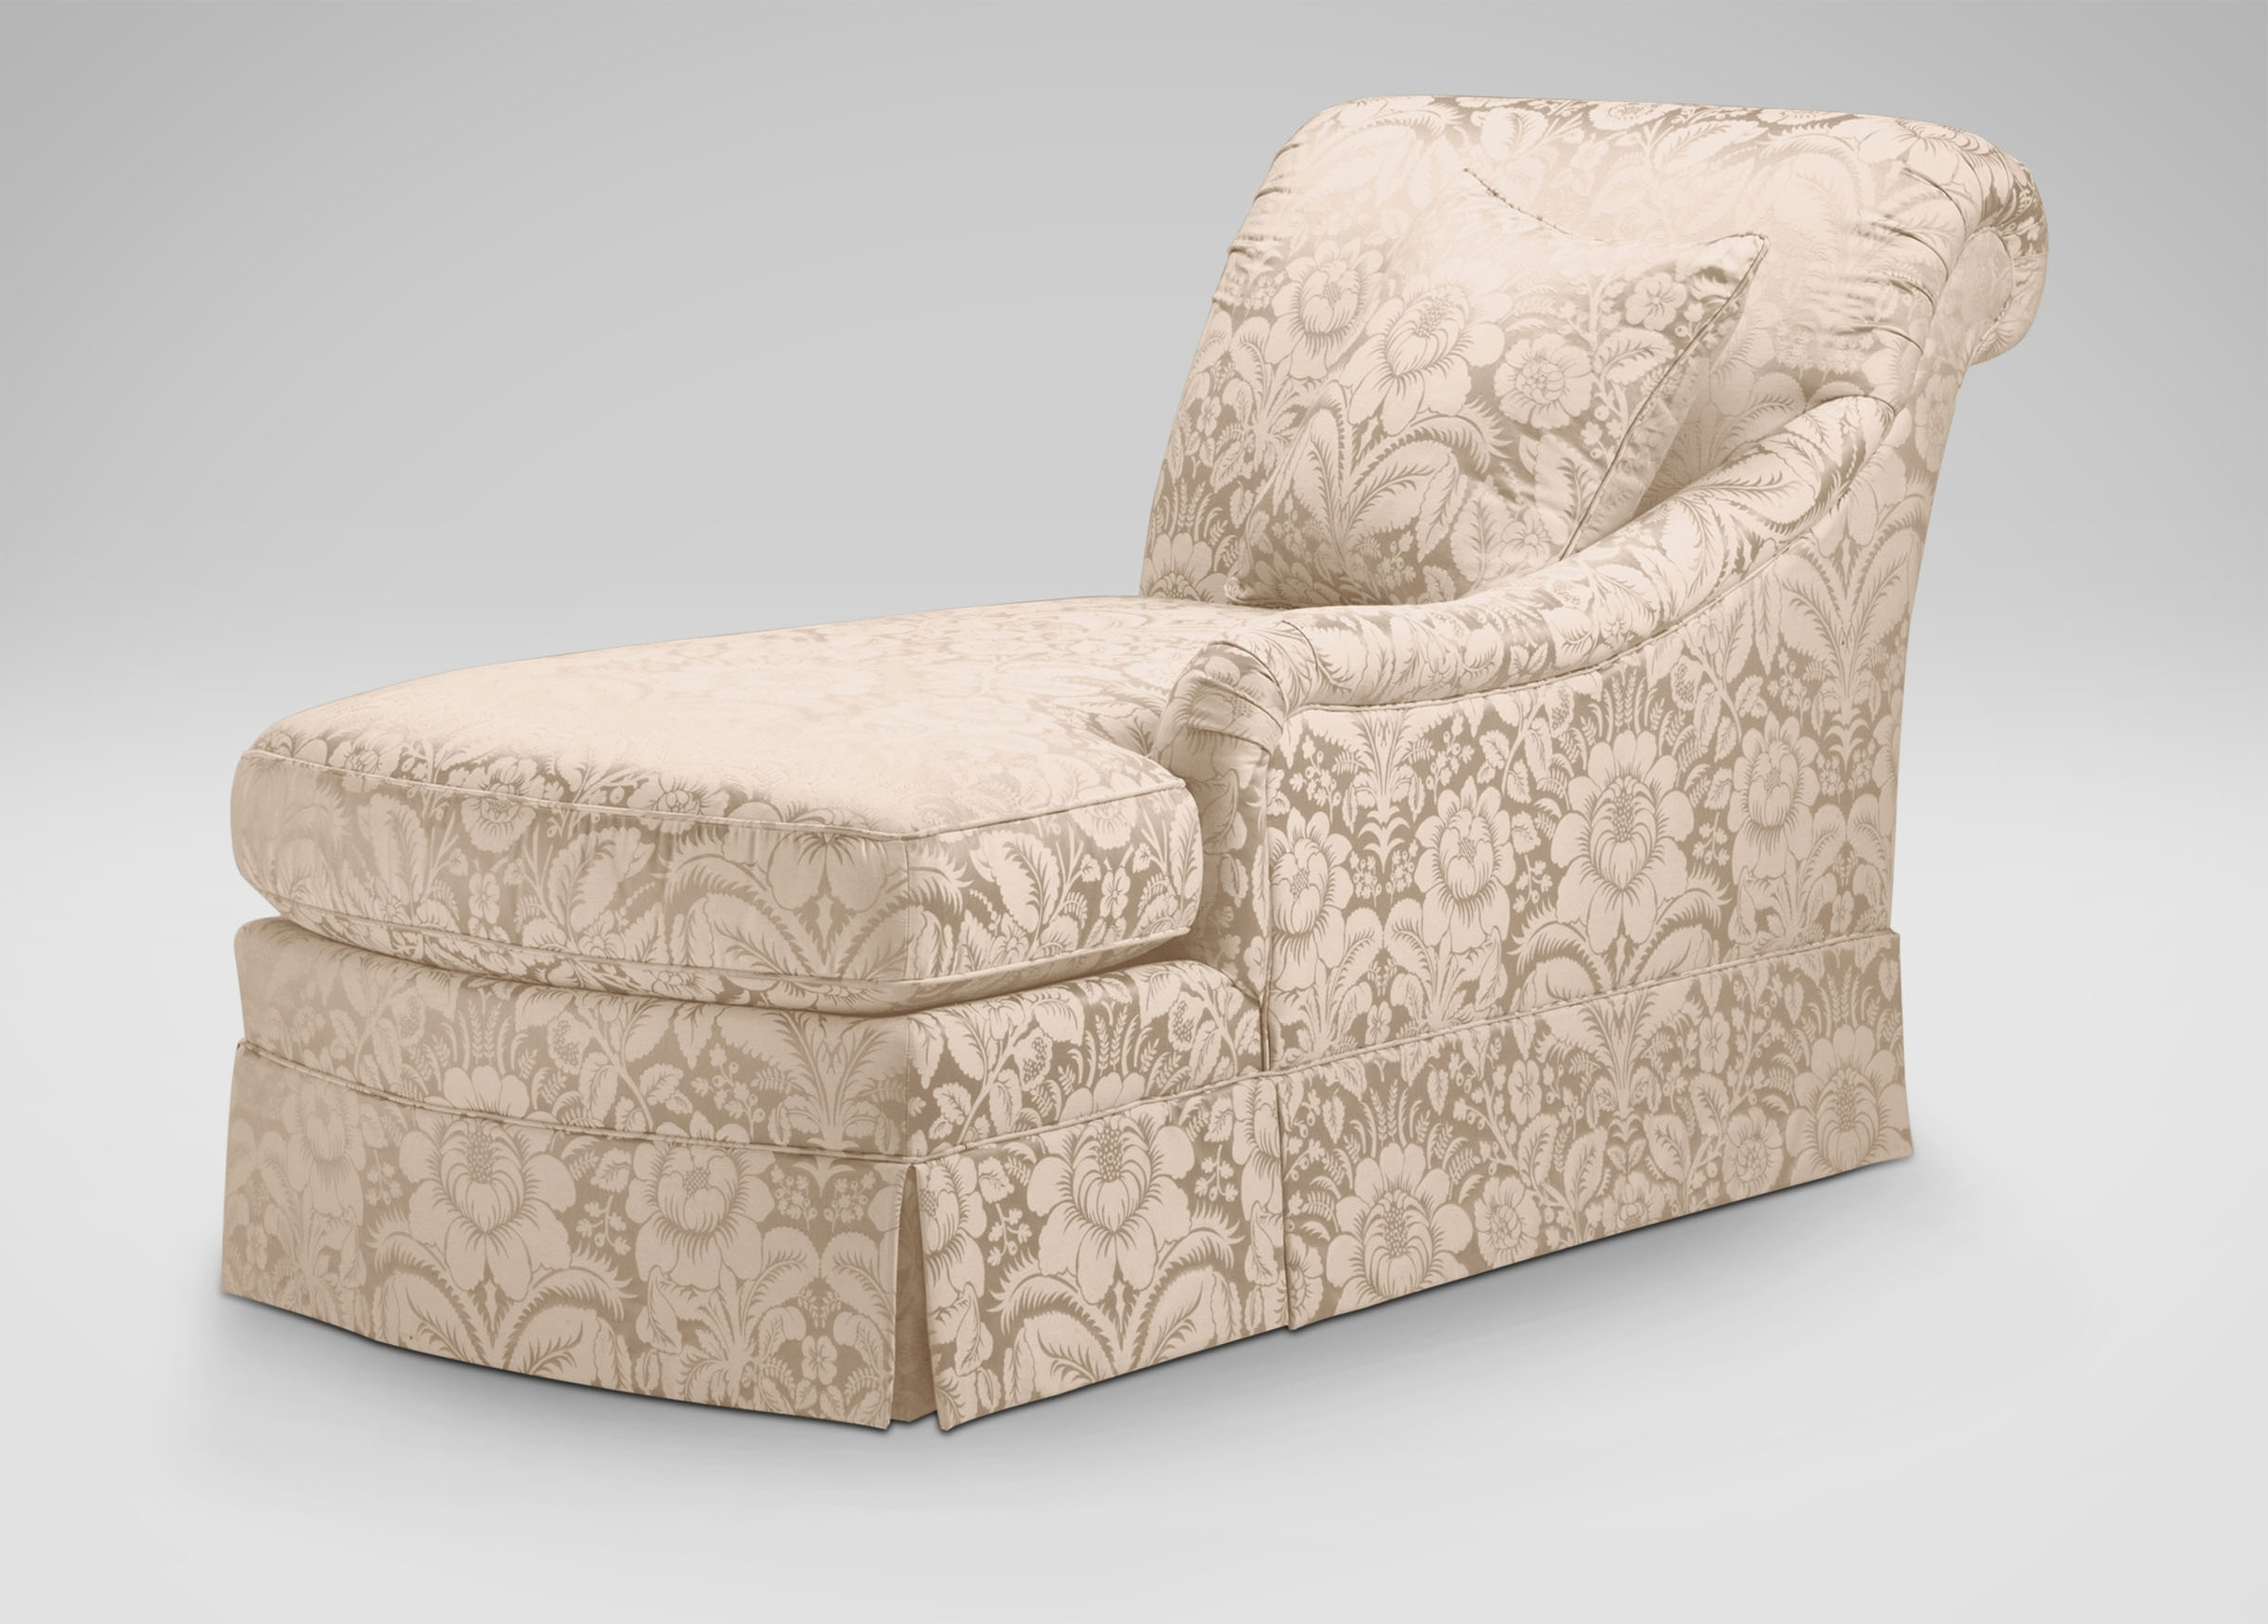 Famous Slipcovers For Chaise Lounge Pertaining To Chaise Lounge Slipcovers – Slipcovers For Chaise Lounge Chairs (View 5 of 15)